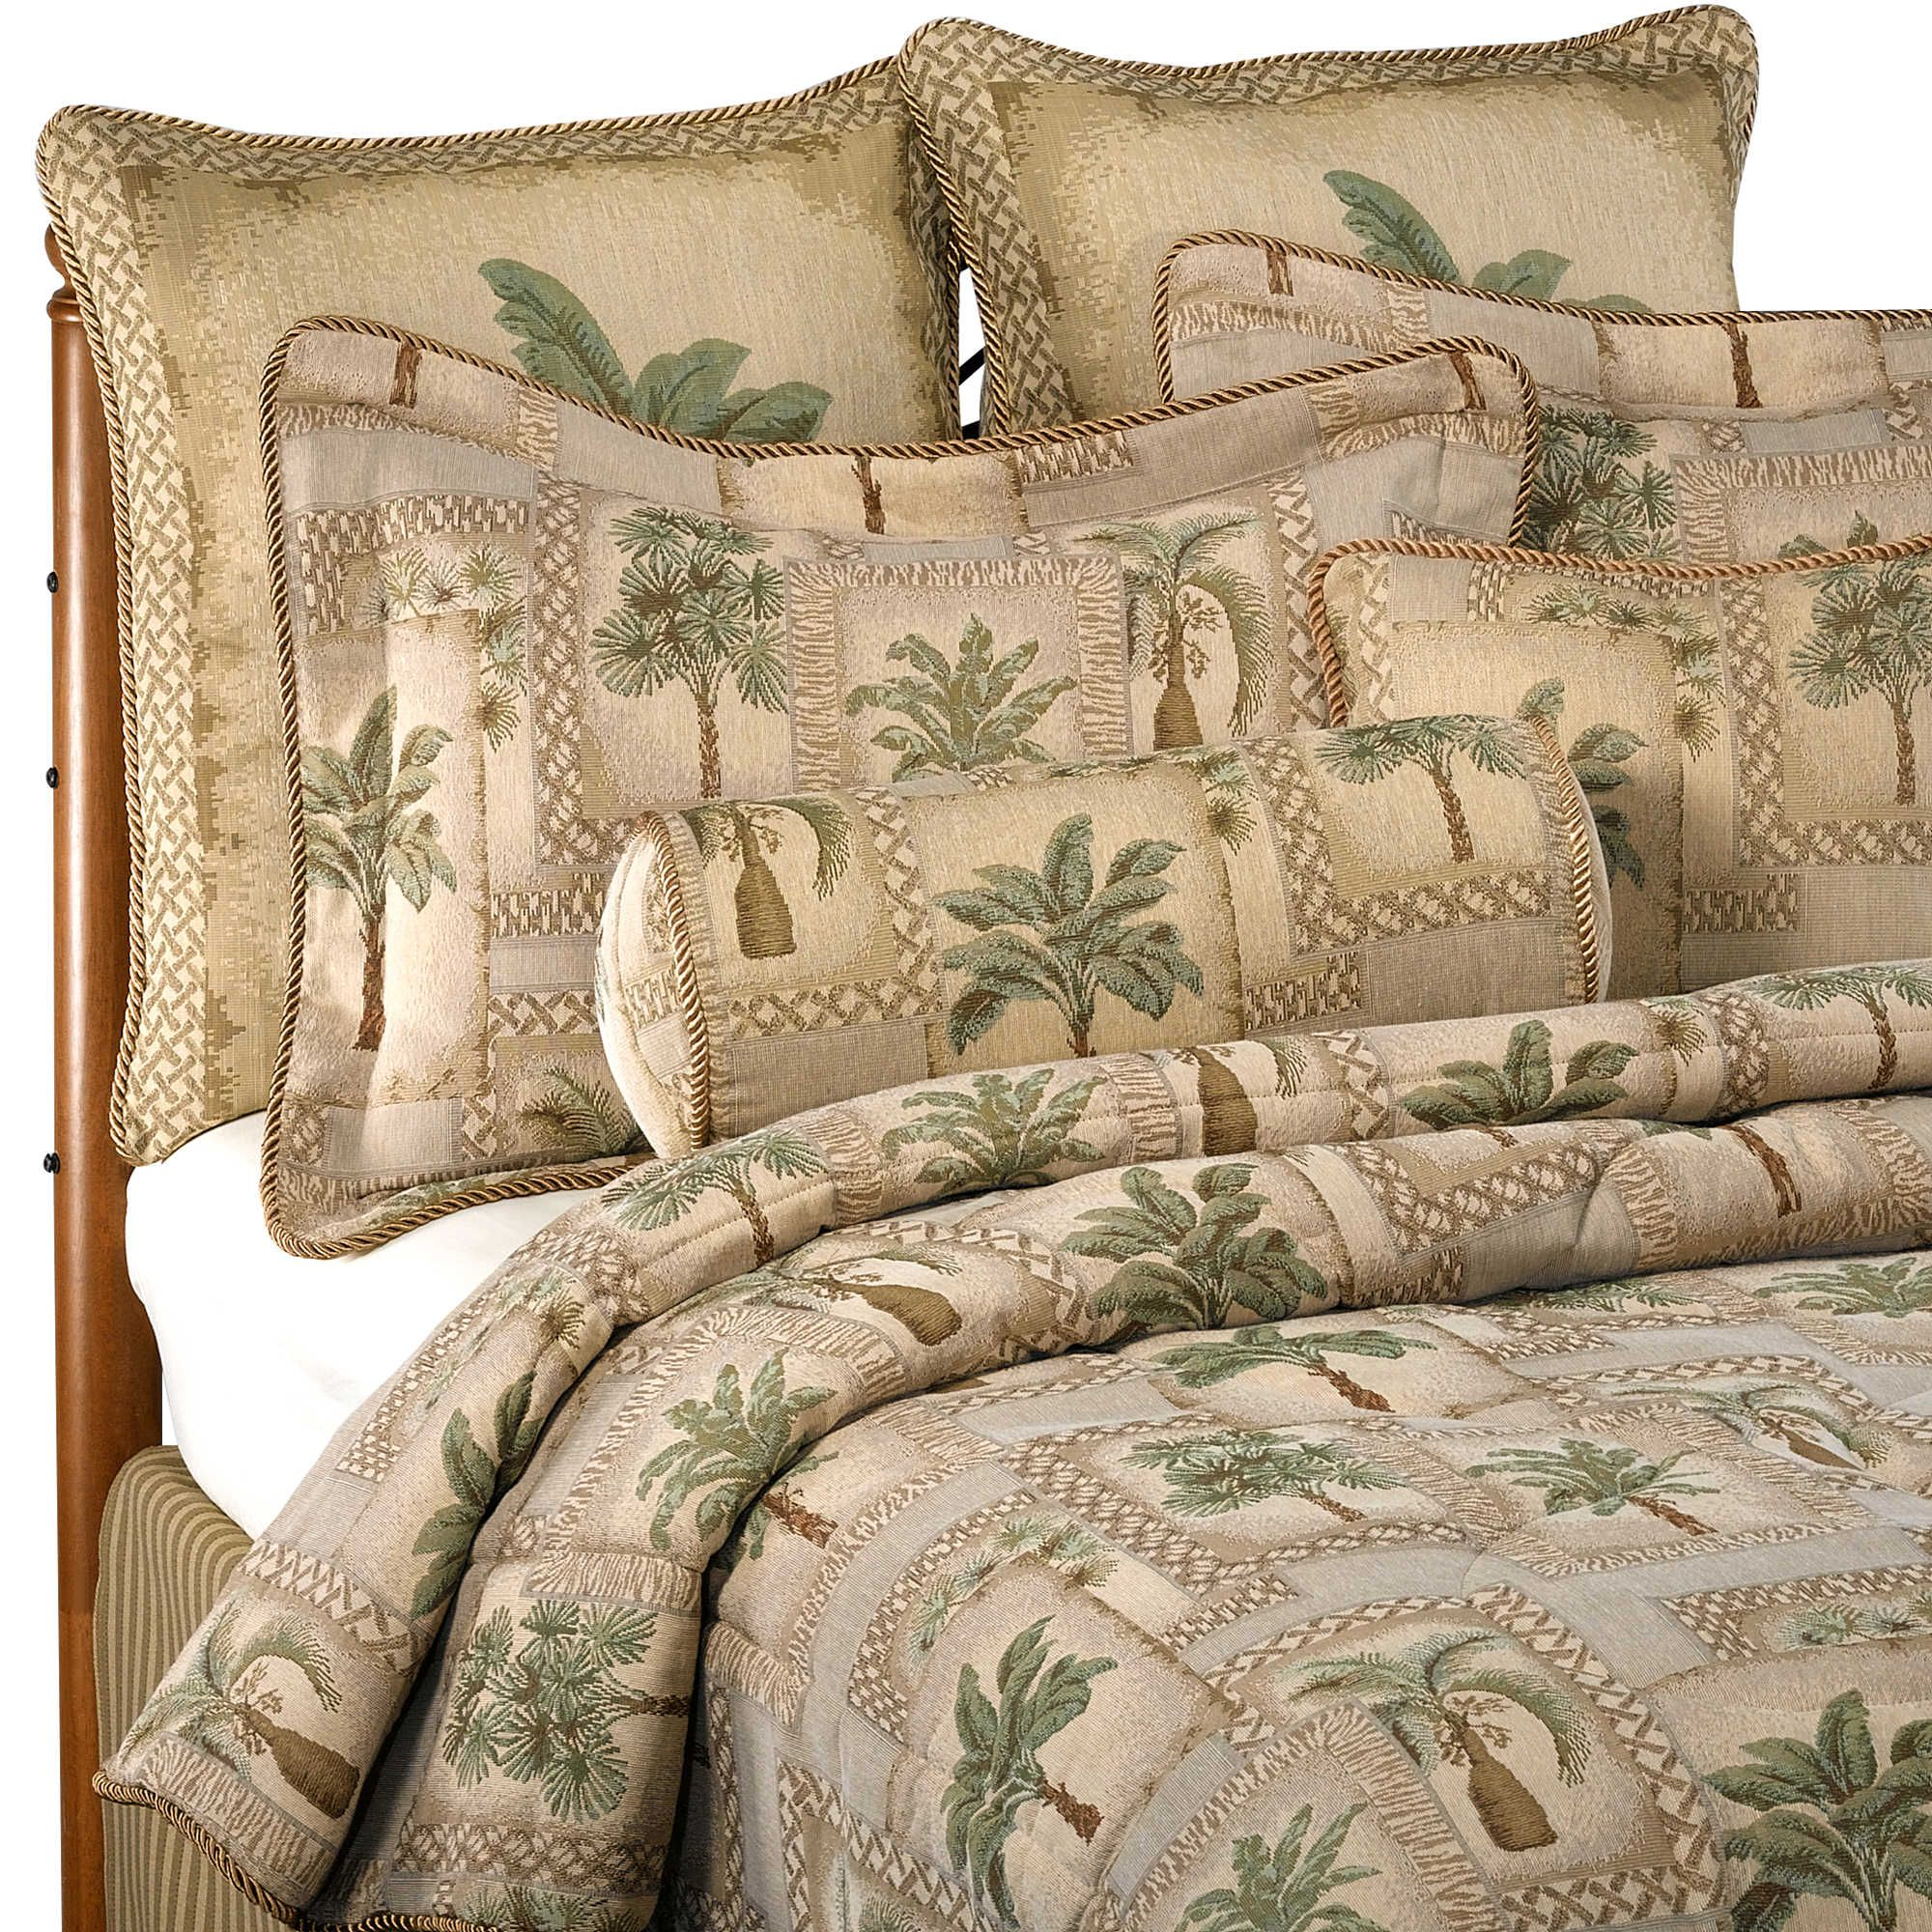 Colonial tropical bedding. Now I just need a small stilt